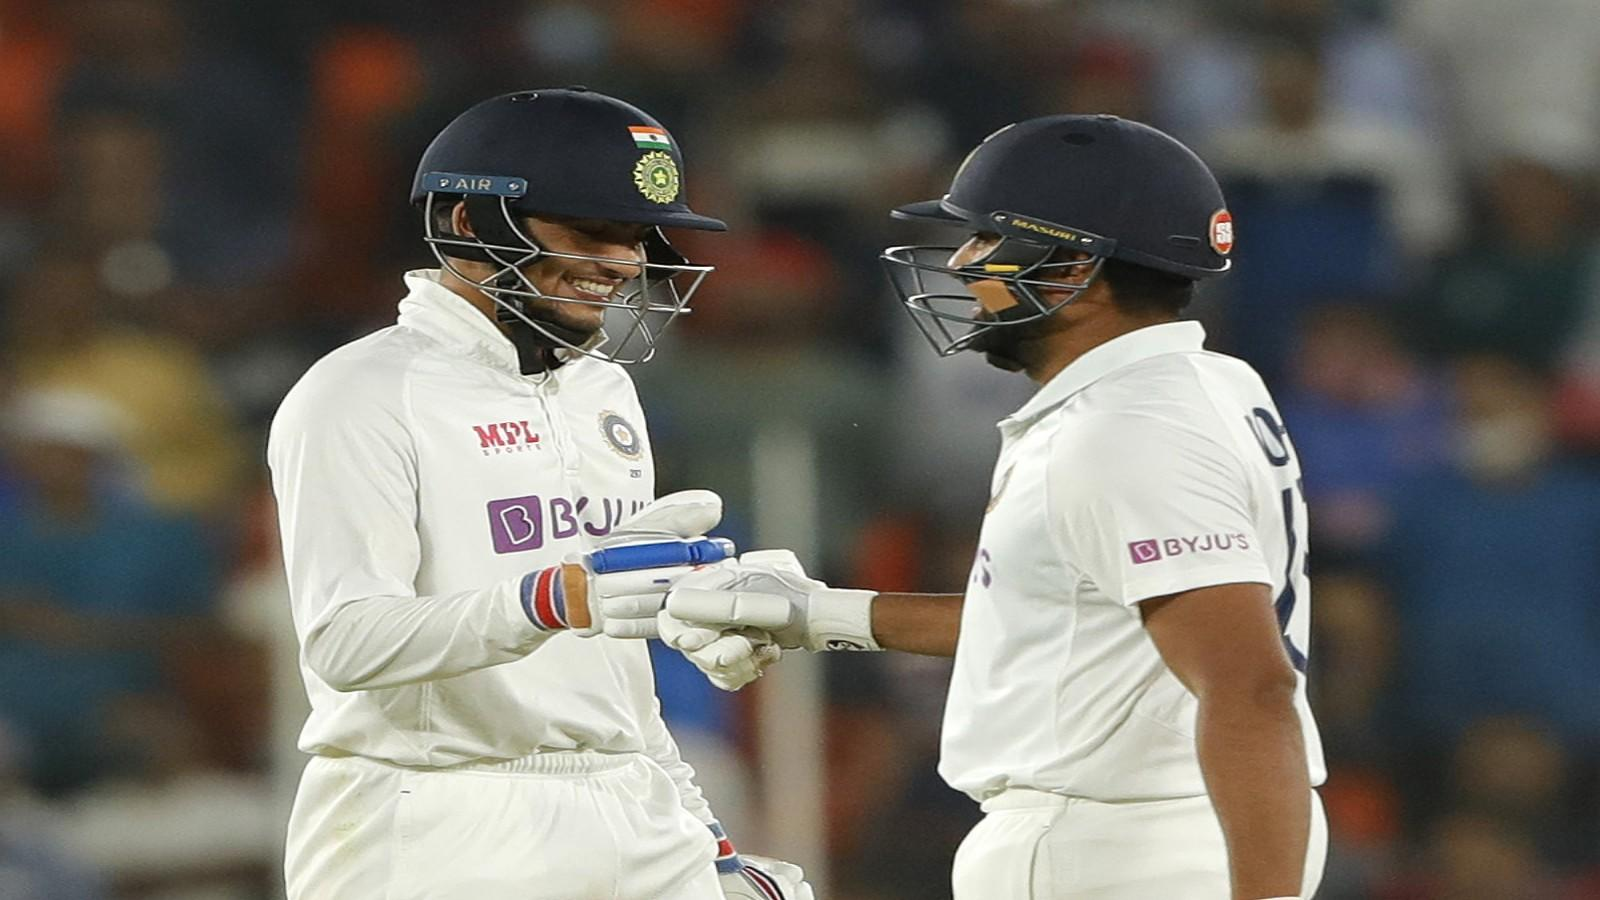 india-beats-england-by-10-wickets-in-two-days-to-take-2-1-series-lead